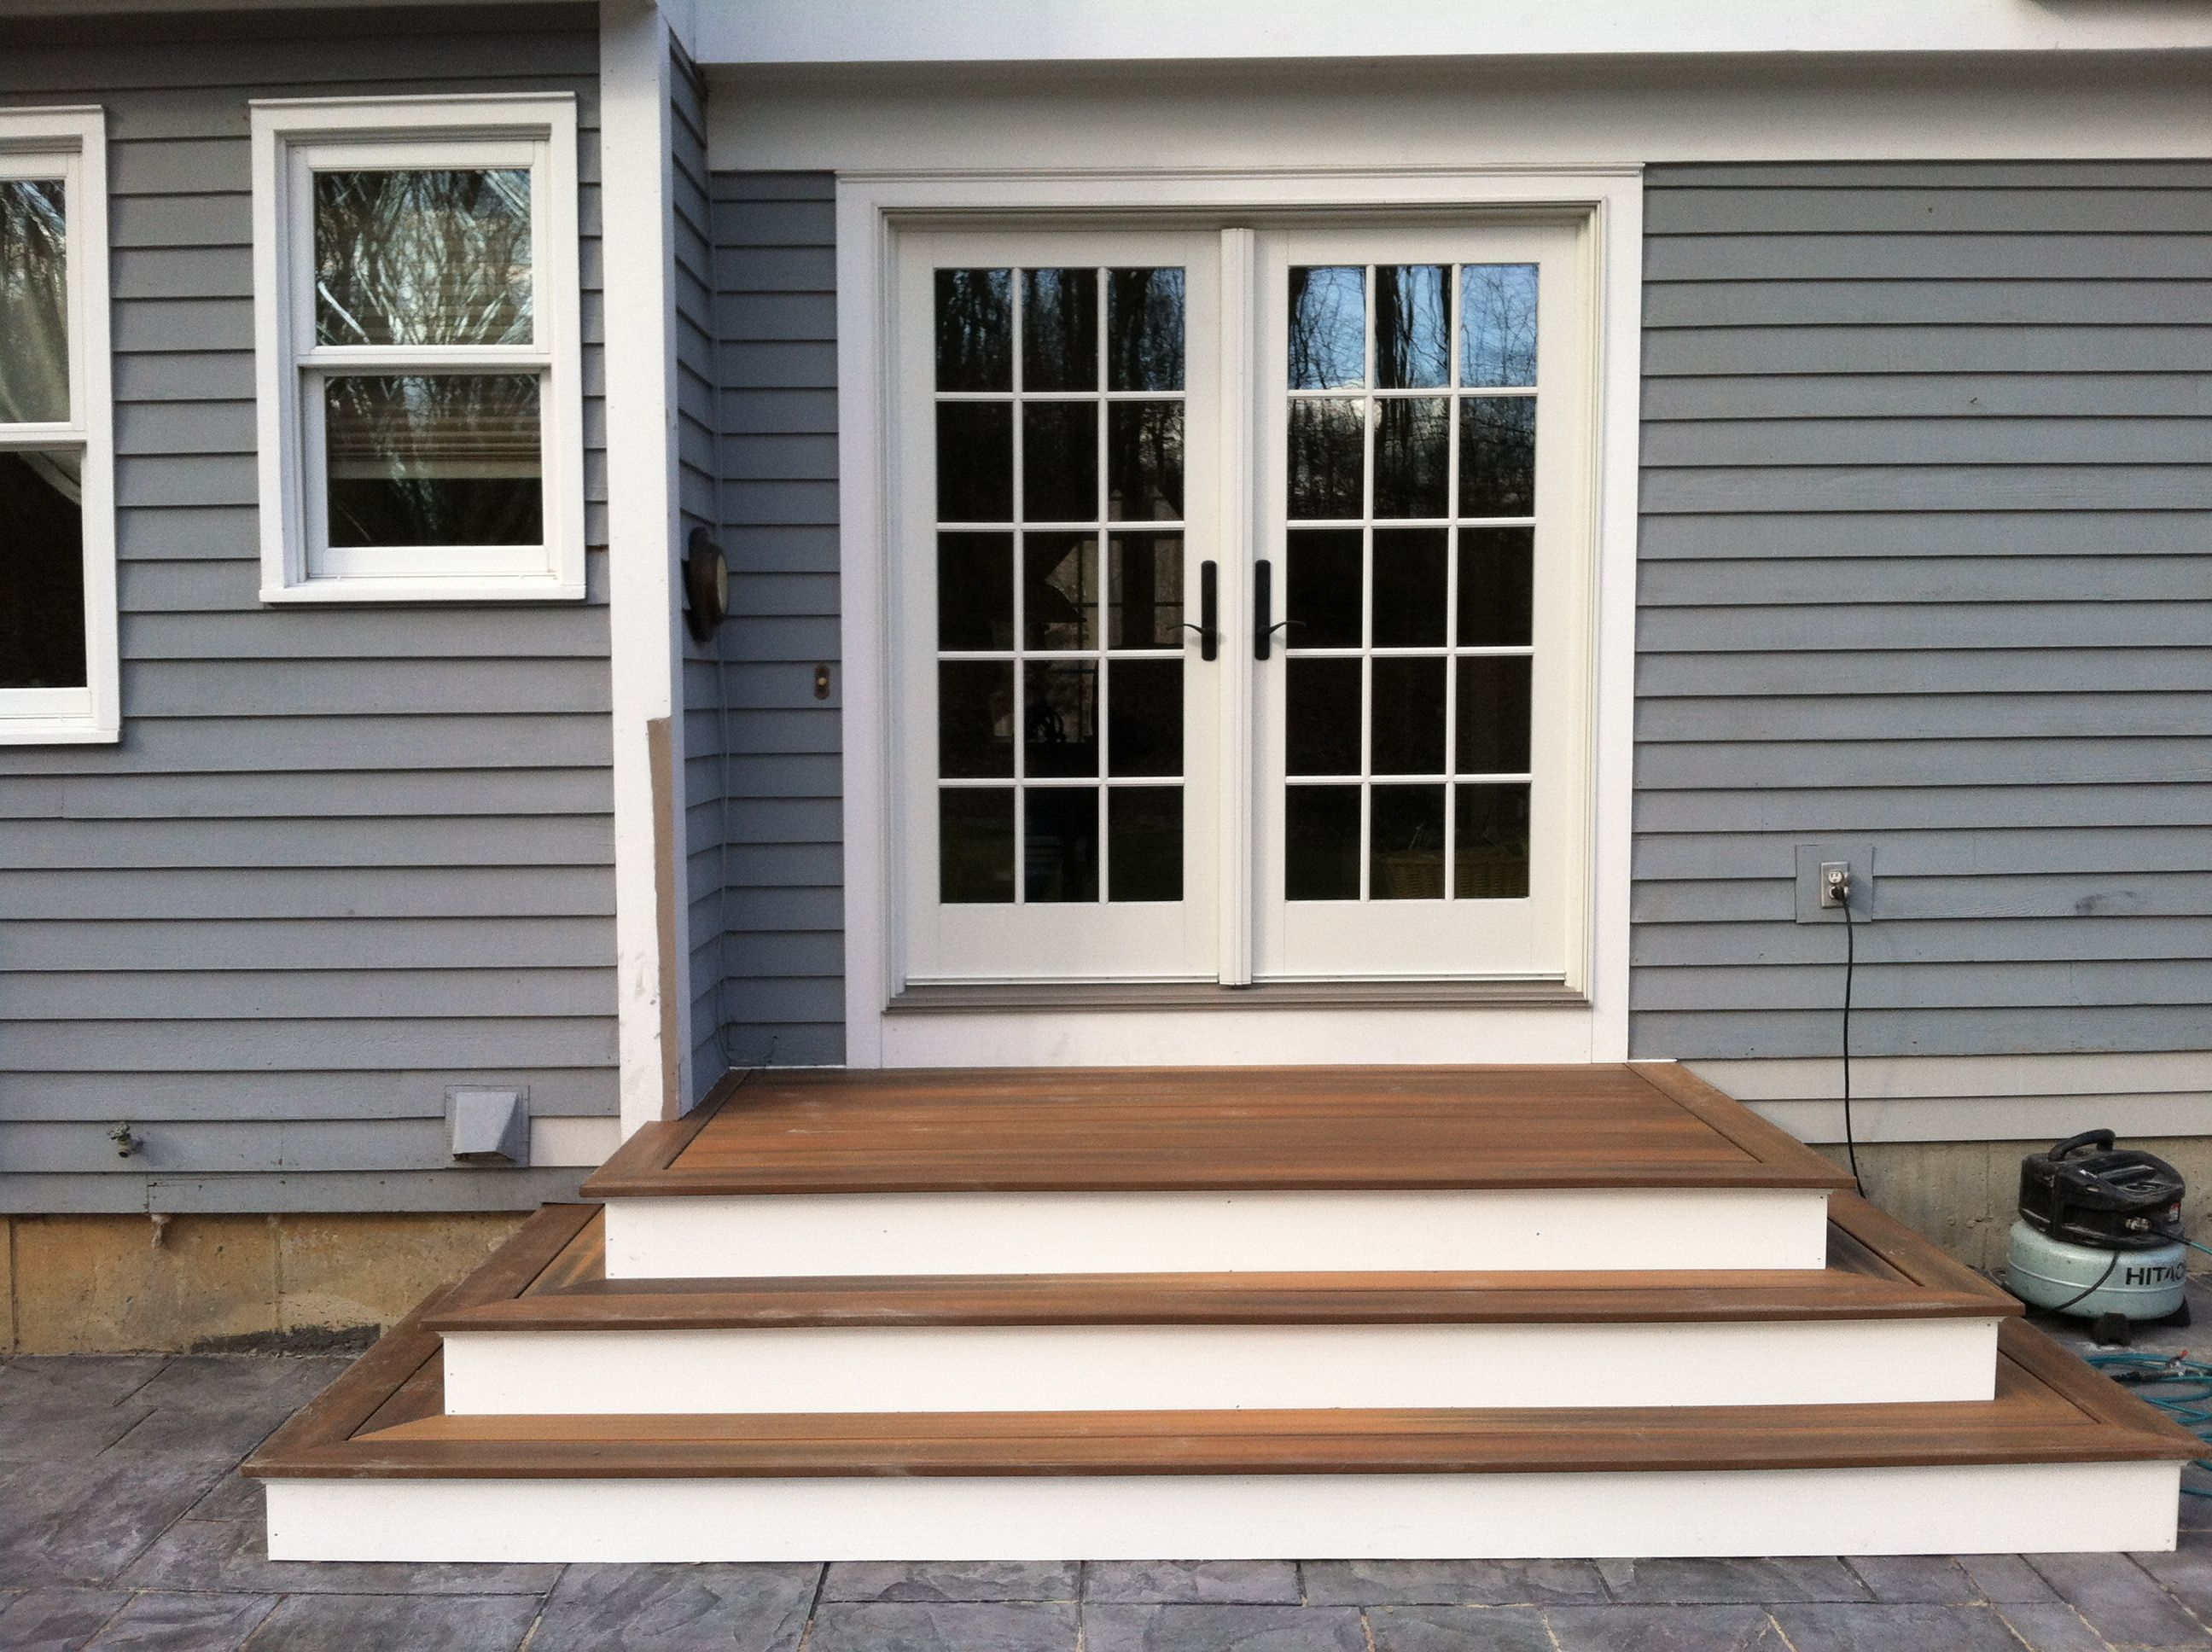 Small Deck Landing Porches Decks Patios Projects To Try Pinterest Deck Patio Porch And Decking